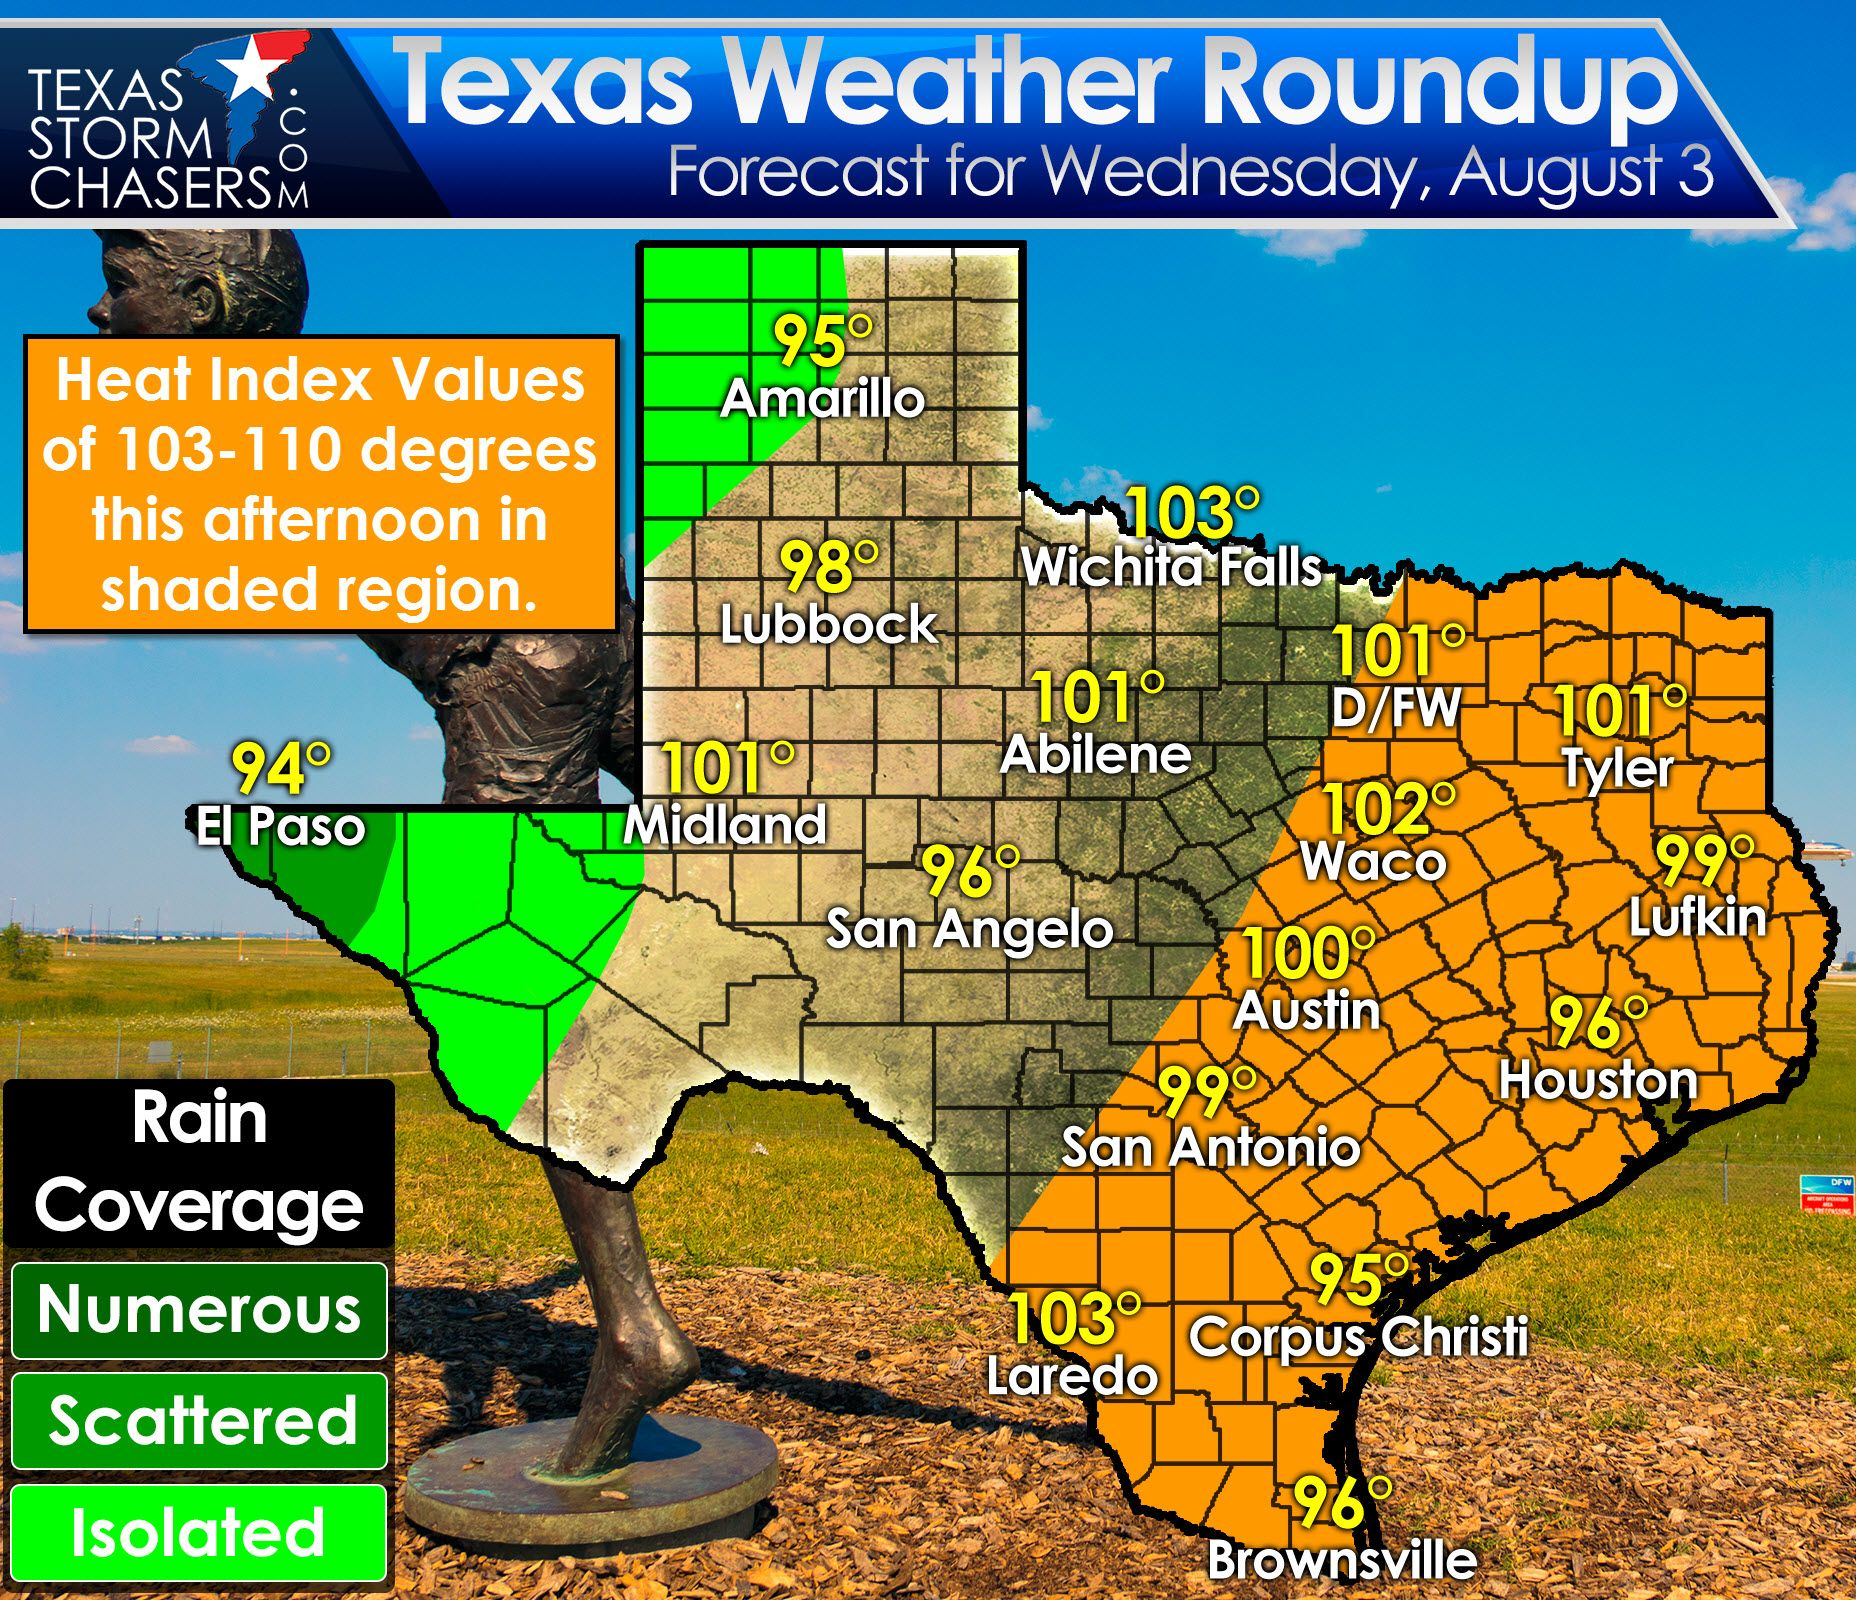 Heat Advisories Expanding With No Cool Off In Sight Texas Storm Chasers Texas Storm Texas Weather Weather Tonight